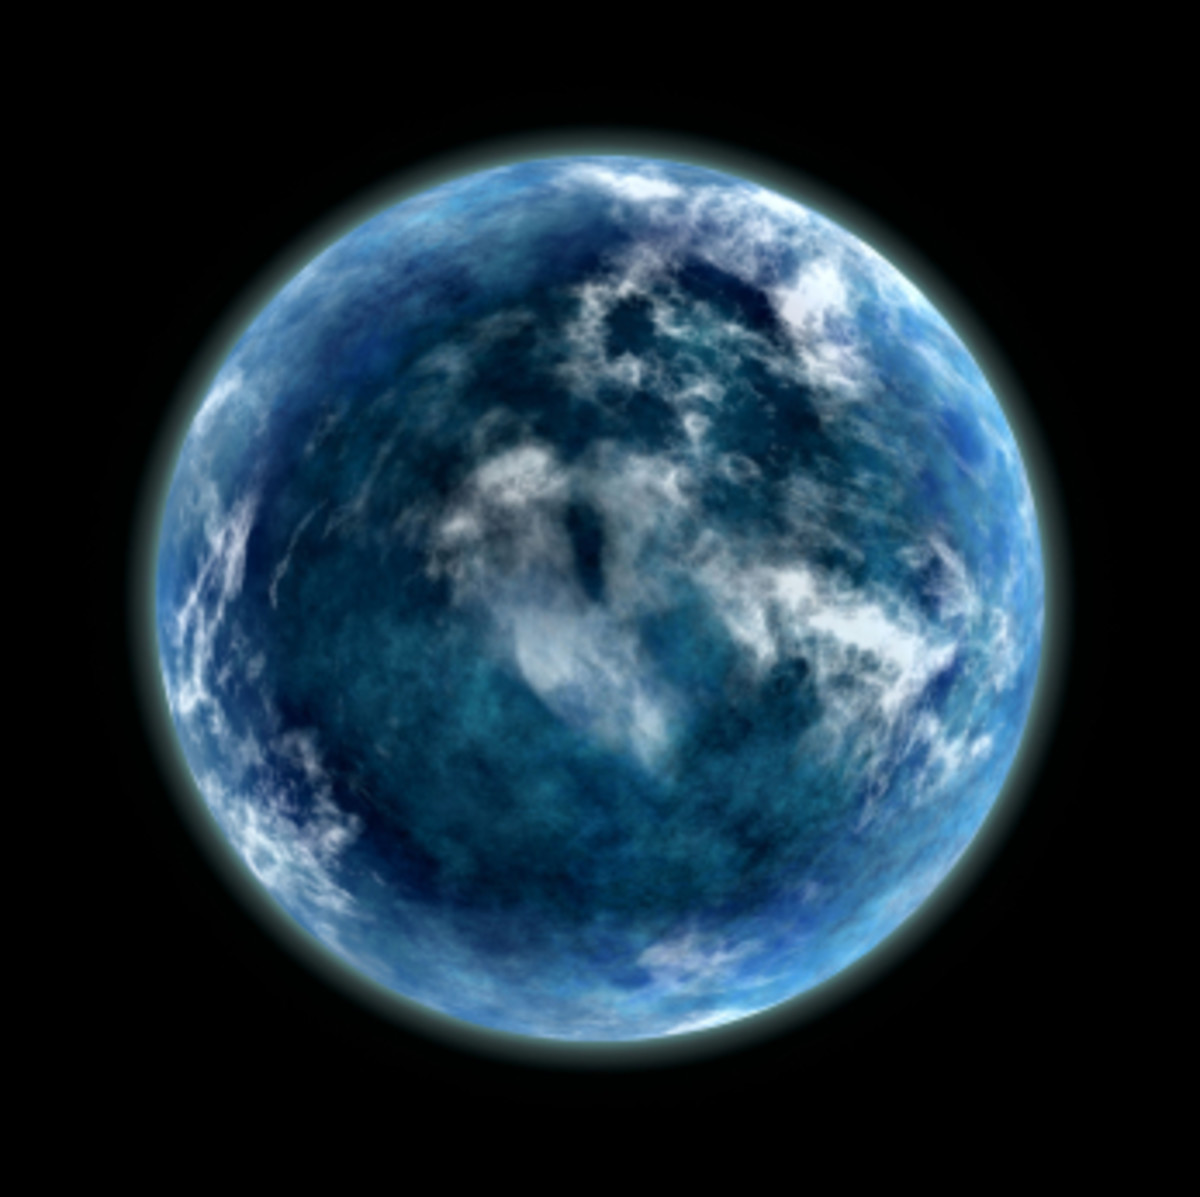 To create an Earth-like world, you might borrow aspects from real life.